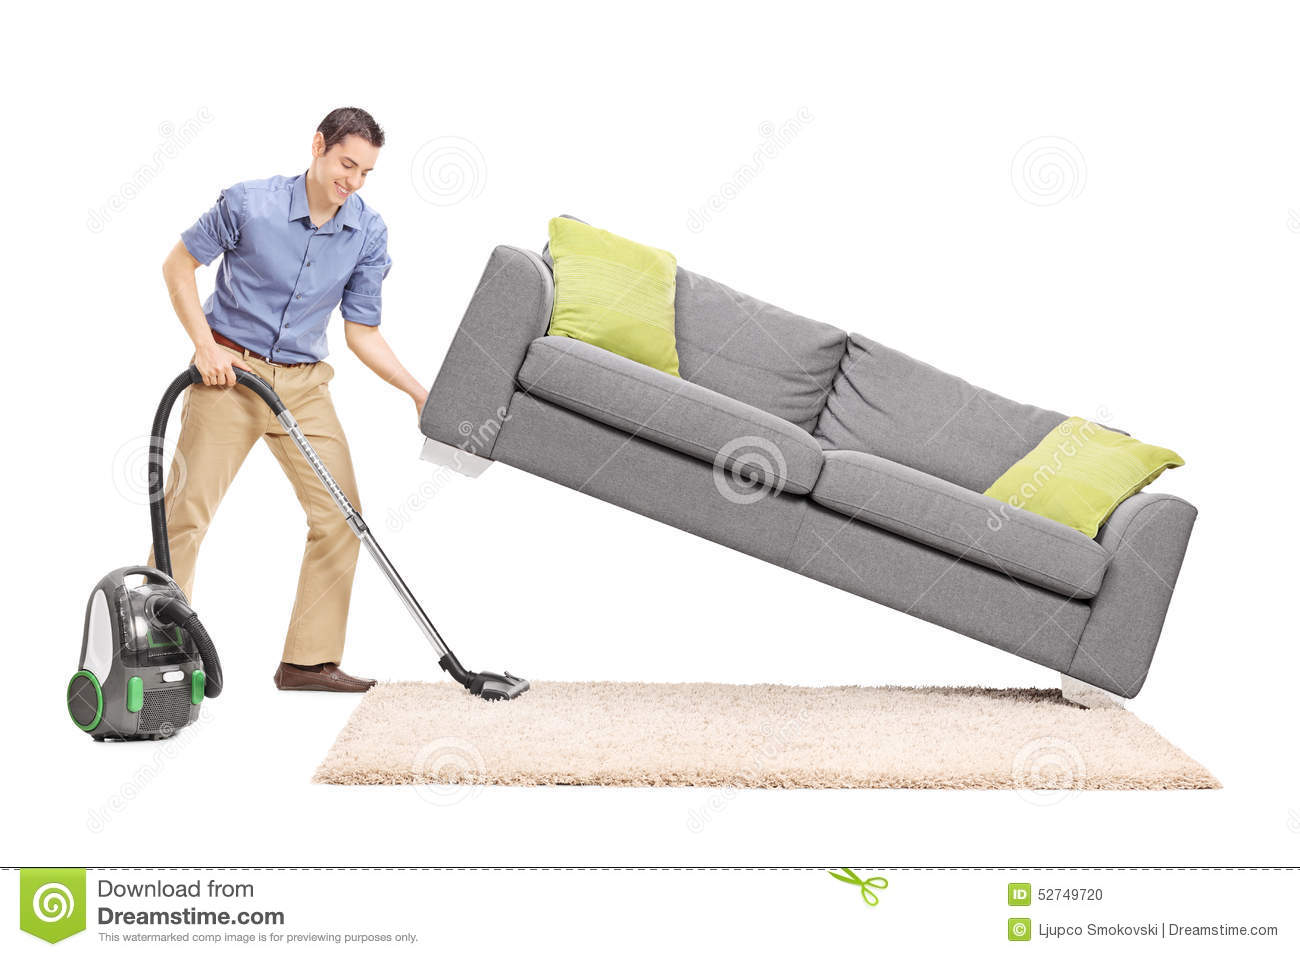 Man Lifting A Sofa And Vacuuming Underneath It Stock Photo  : man lifting sofa vacuuming underneath cheerful young cleaning vacuum cleaner isolated white background 52749720 from www.dreamstime.com size 1300 x 957 jpeg 96kB